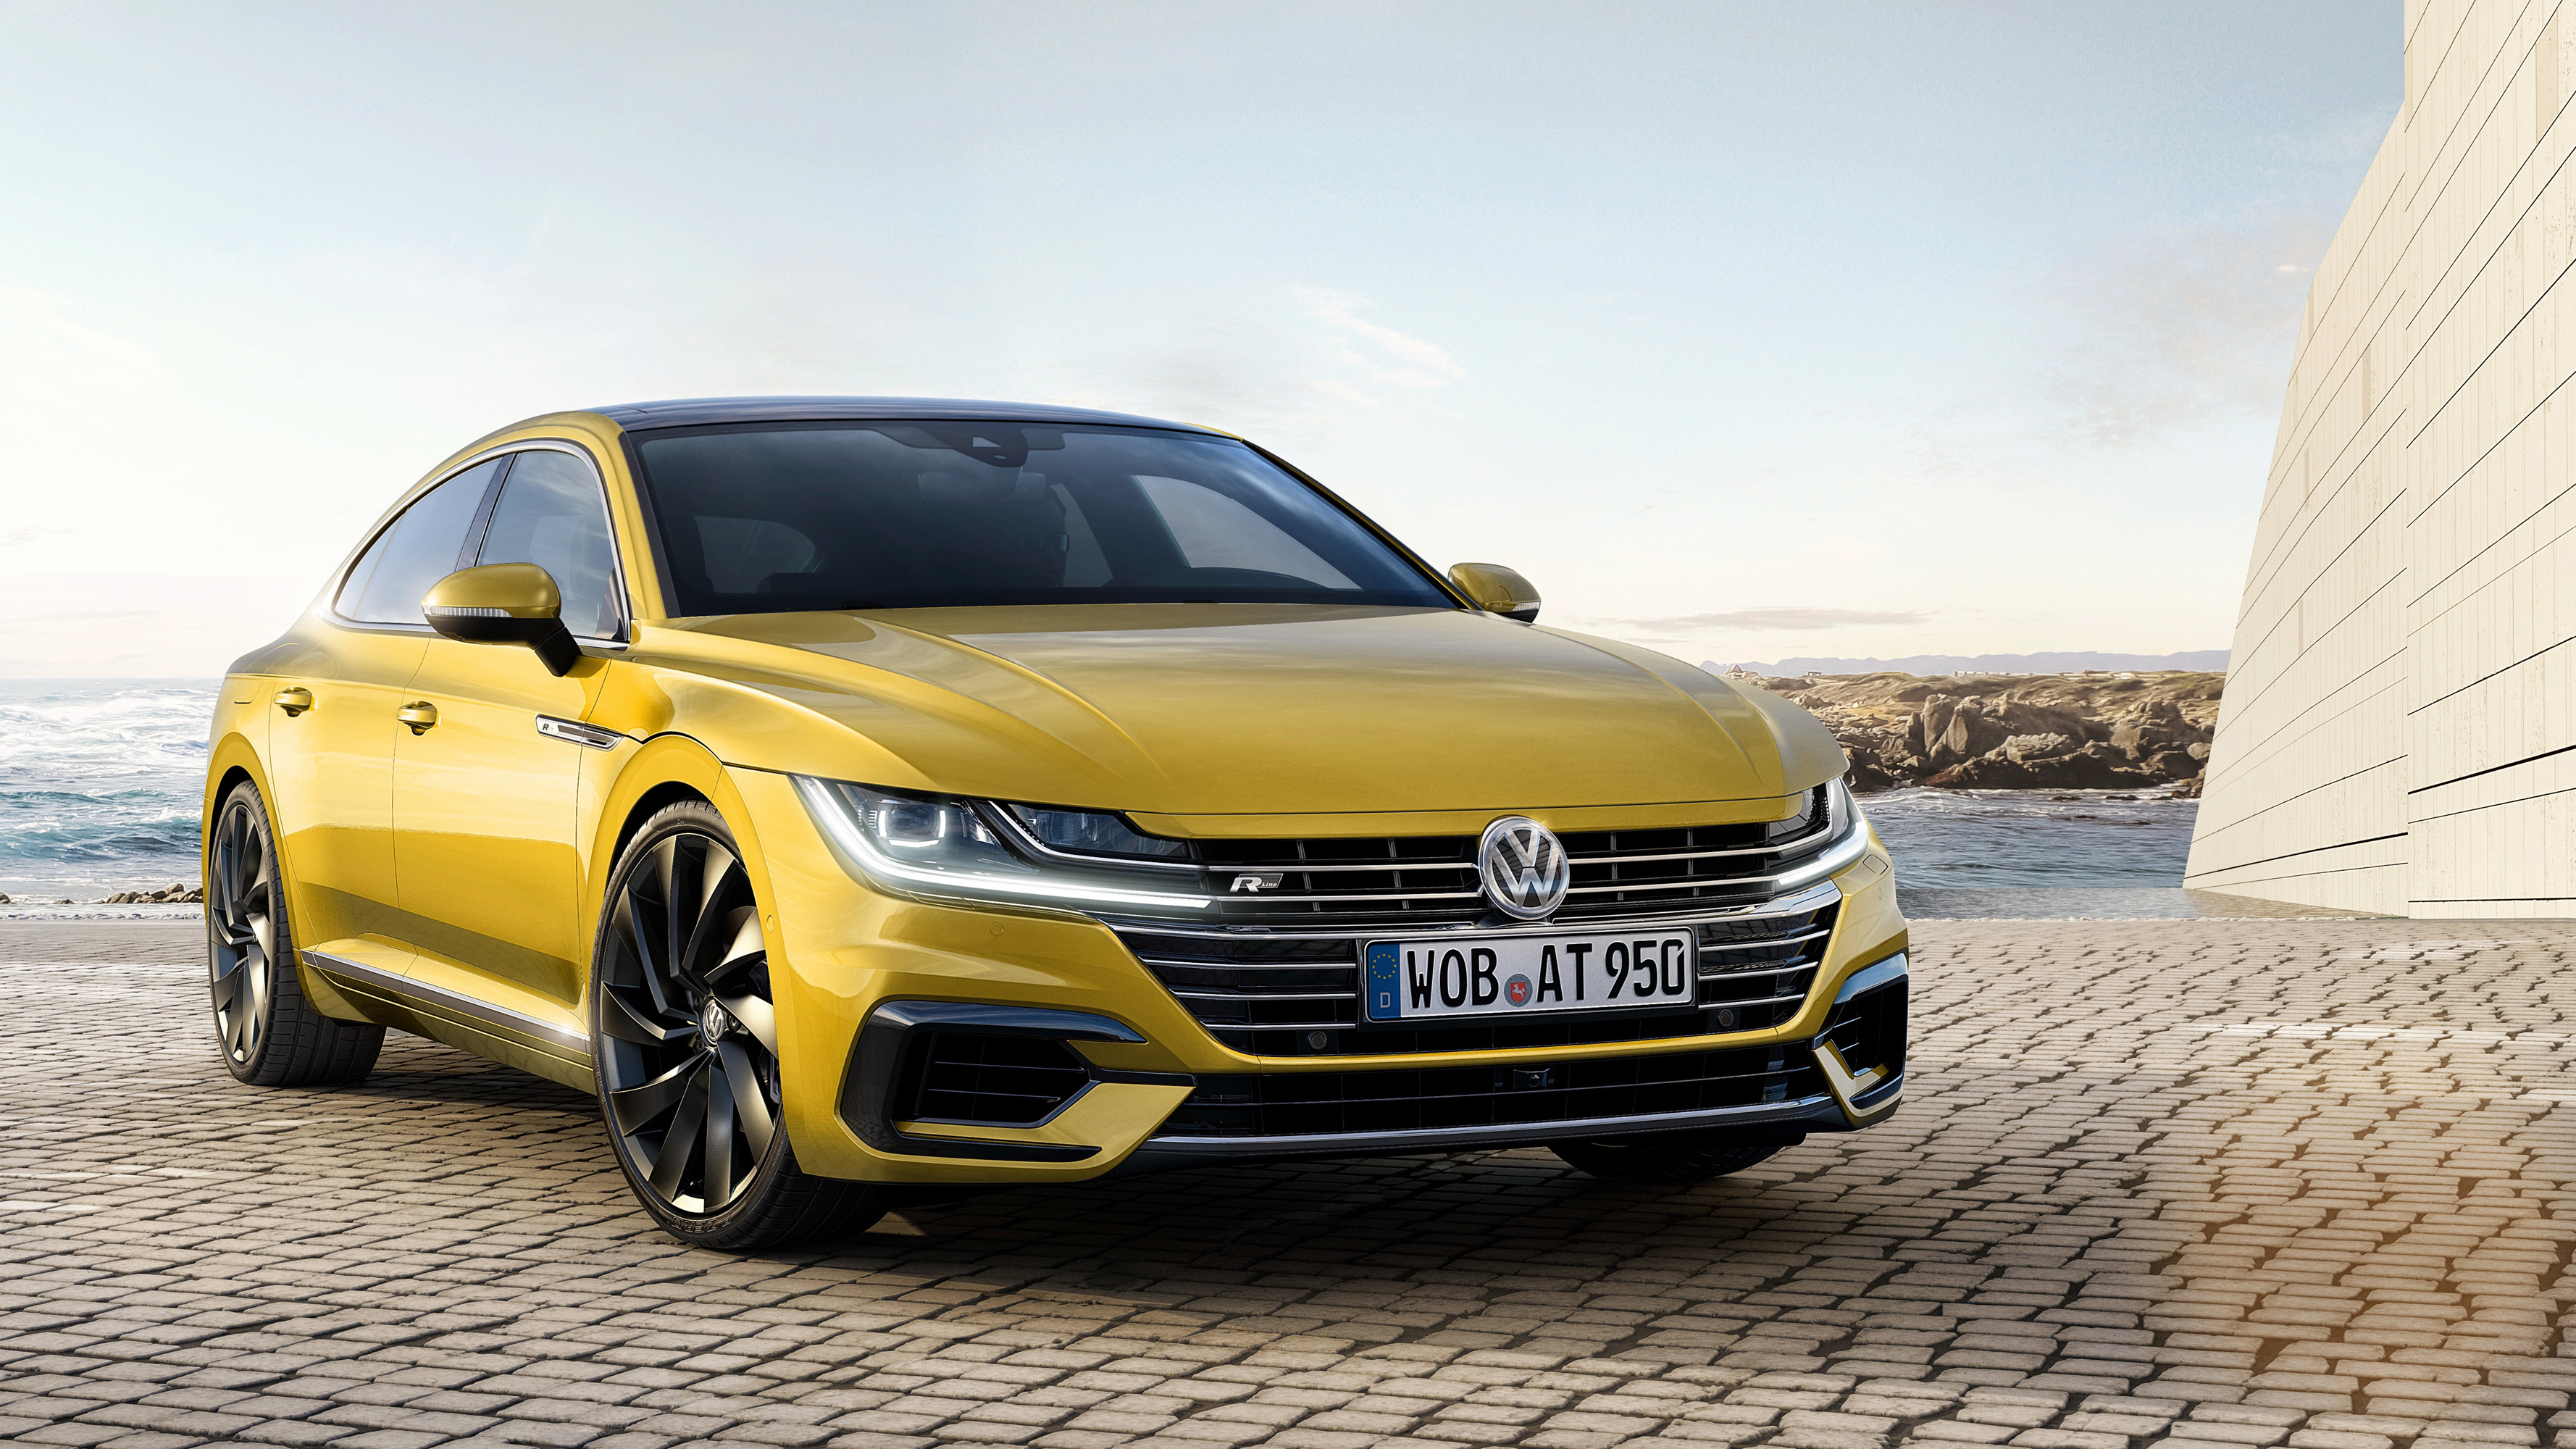 3556x2000 - Volkswagen Arteon Wallpapers 4